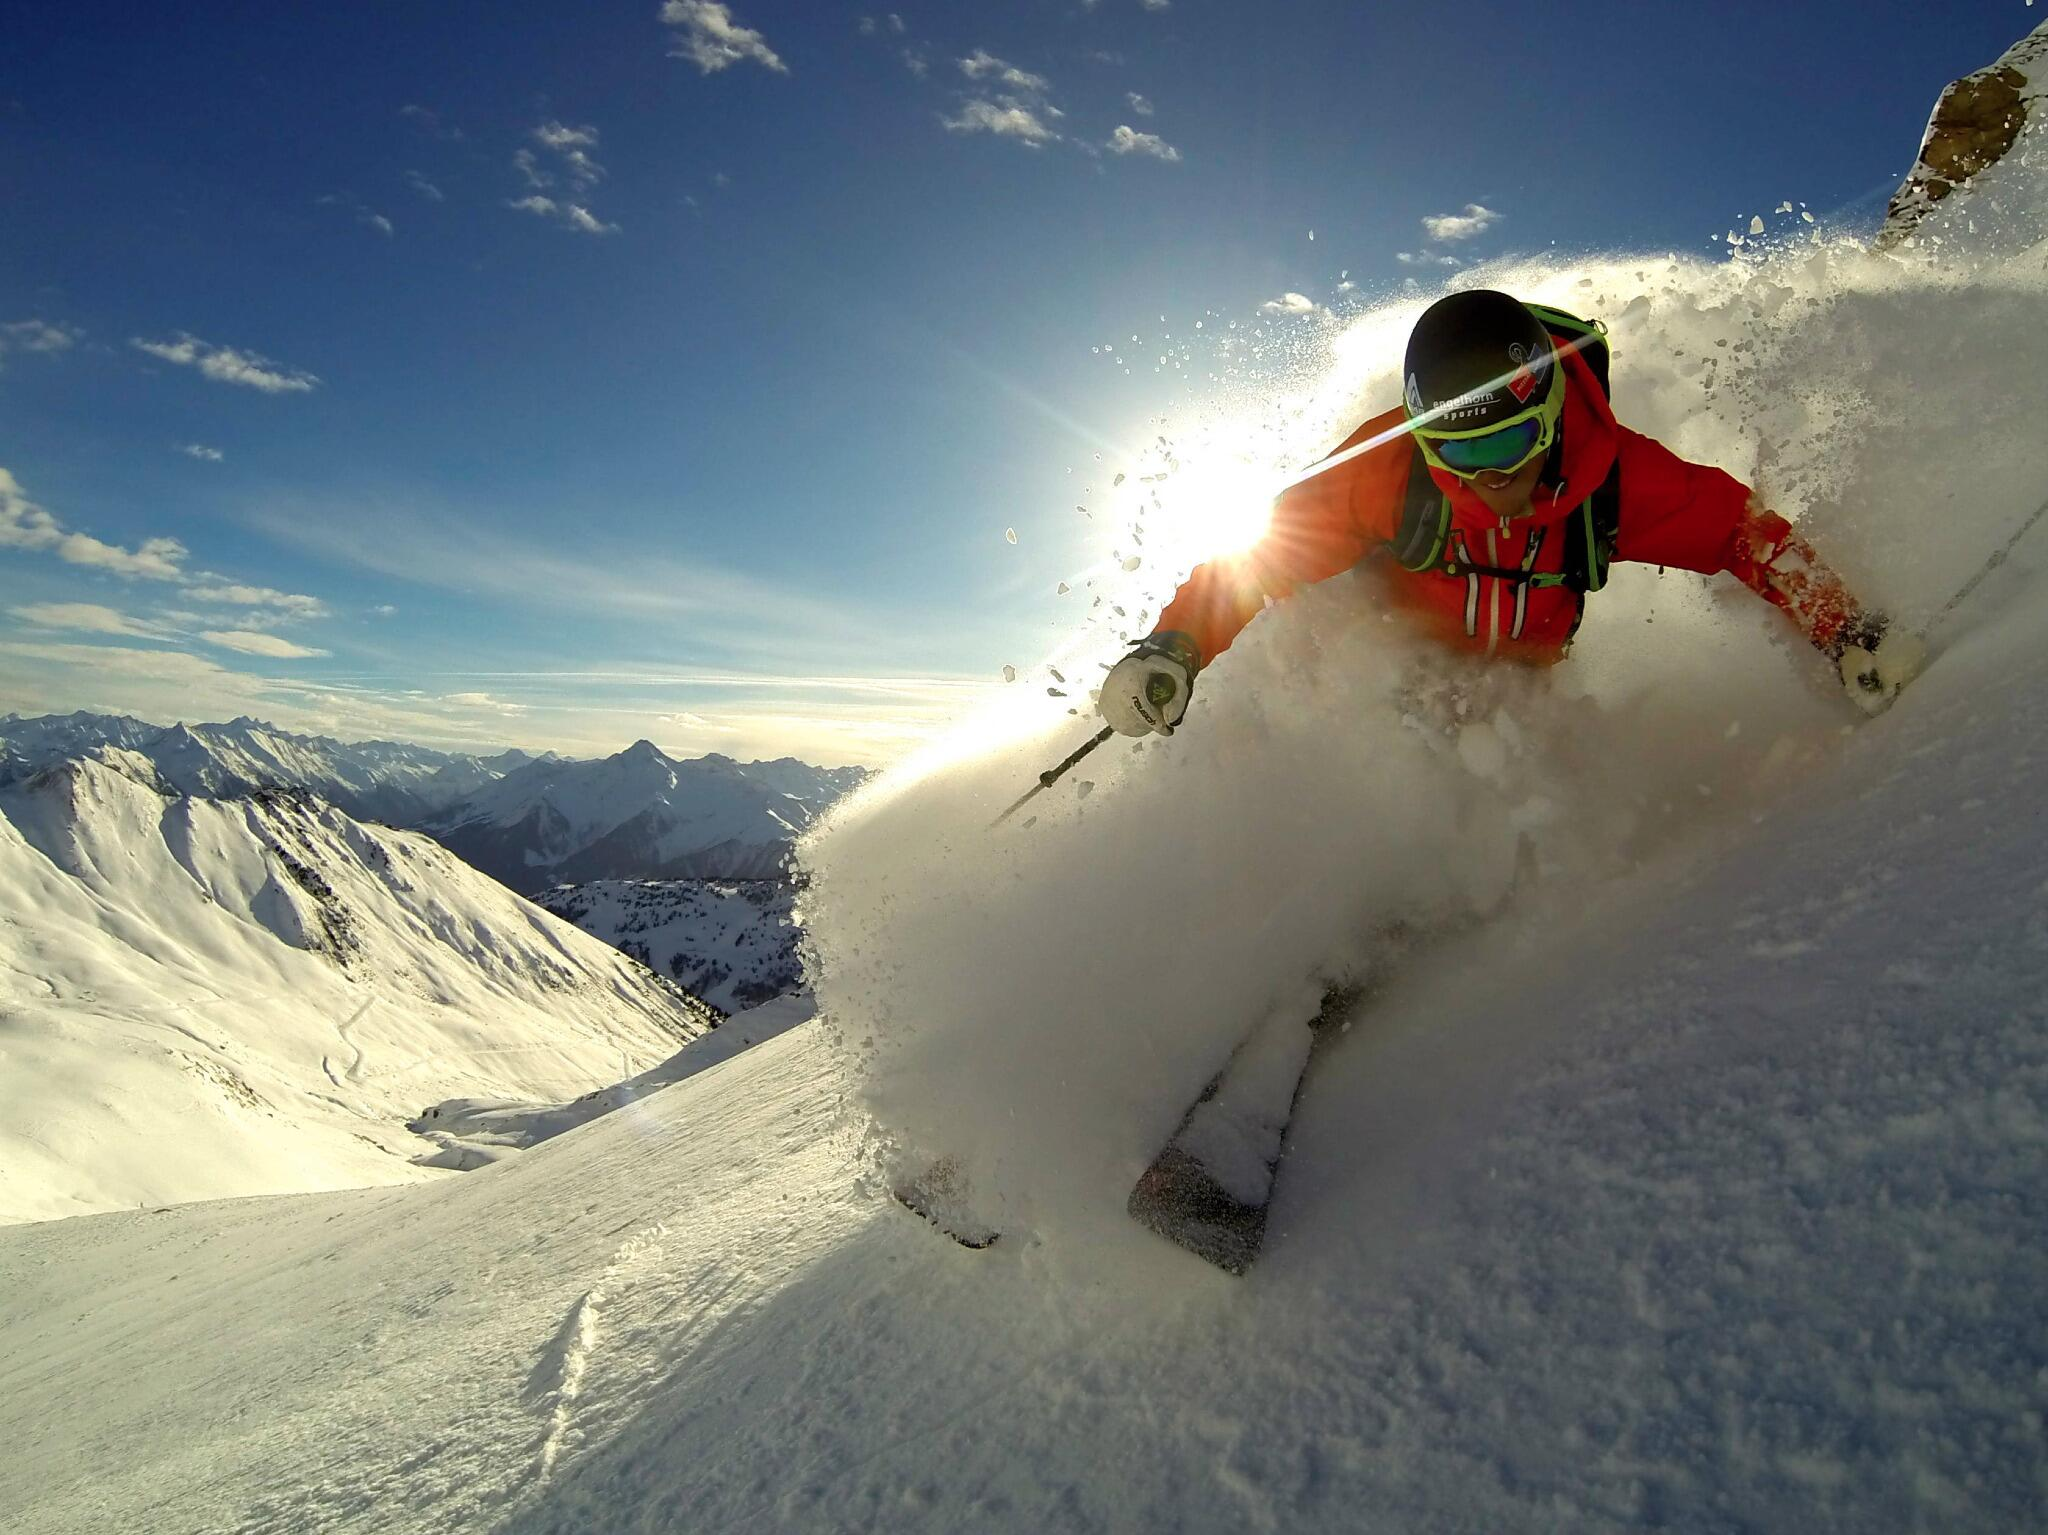 Photo of the Day! Felix Wiemers carves it up on a bluebird day in the Tyrolean Alps during the @FreerideWTour. http://t.co/8eNaJiwvFJ